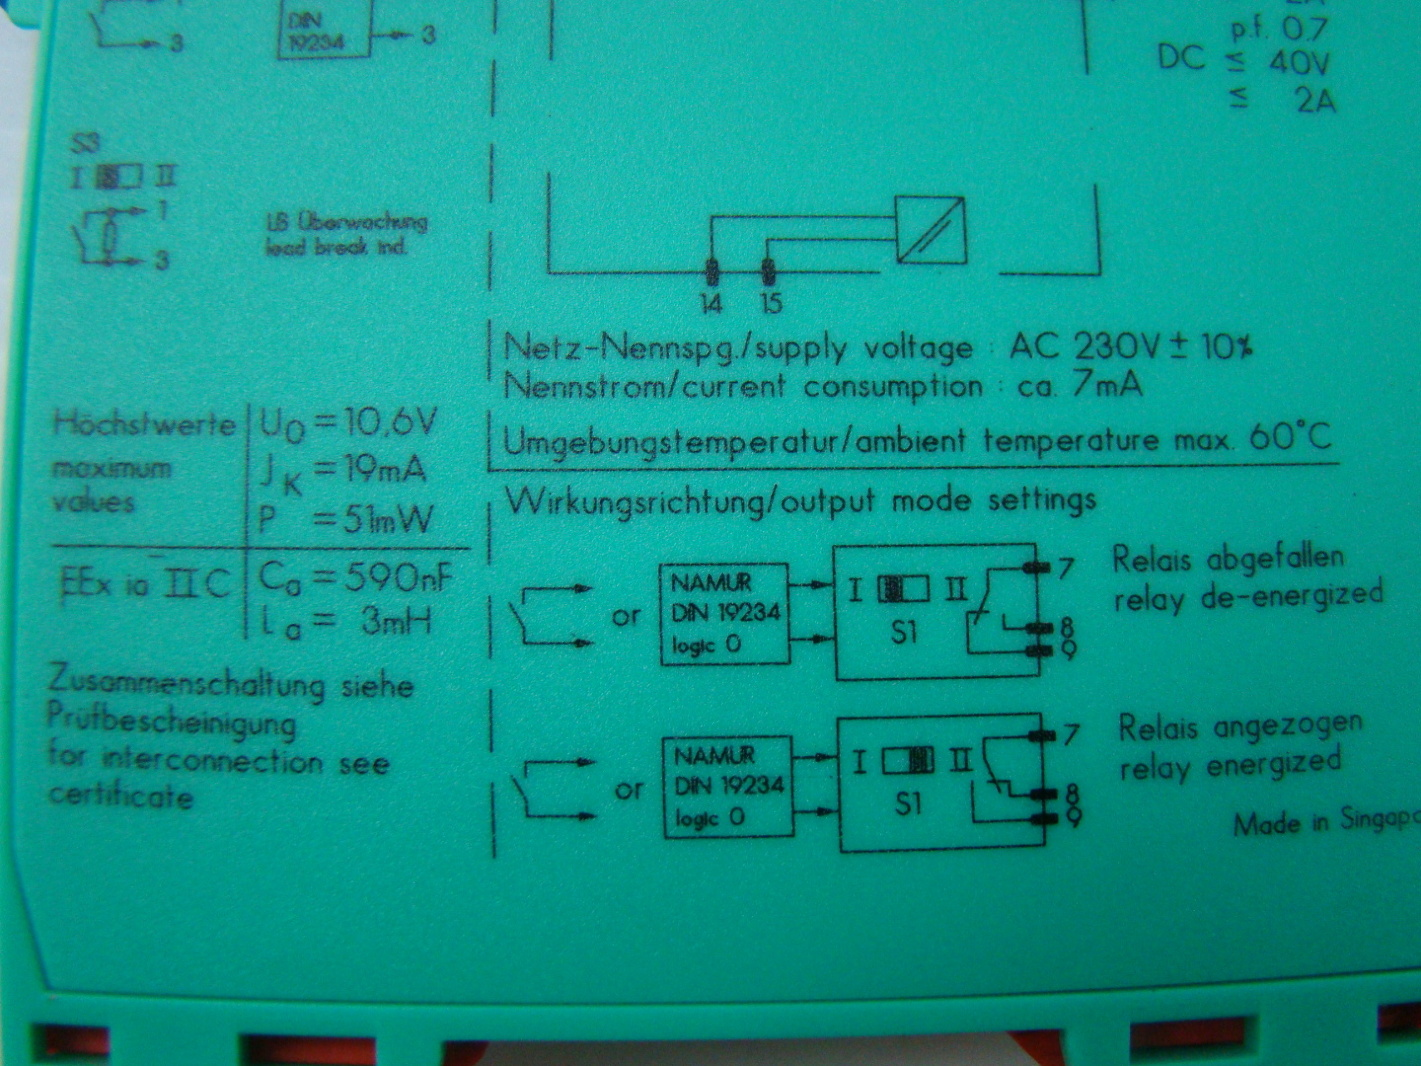 jf07188 pepperl fuchs isolated switch amplifier kfa6 sr2 ex1w 11 pepperl fuchs isolated switch amplifier kfa6 sr2 ex1 w ebay kfd2-sr2-ex1.w wiring diagram at gsmportal.co